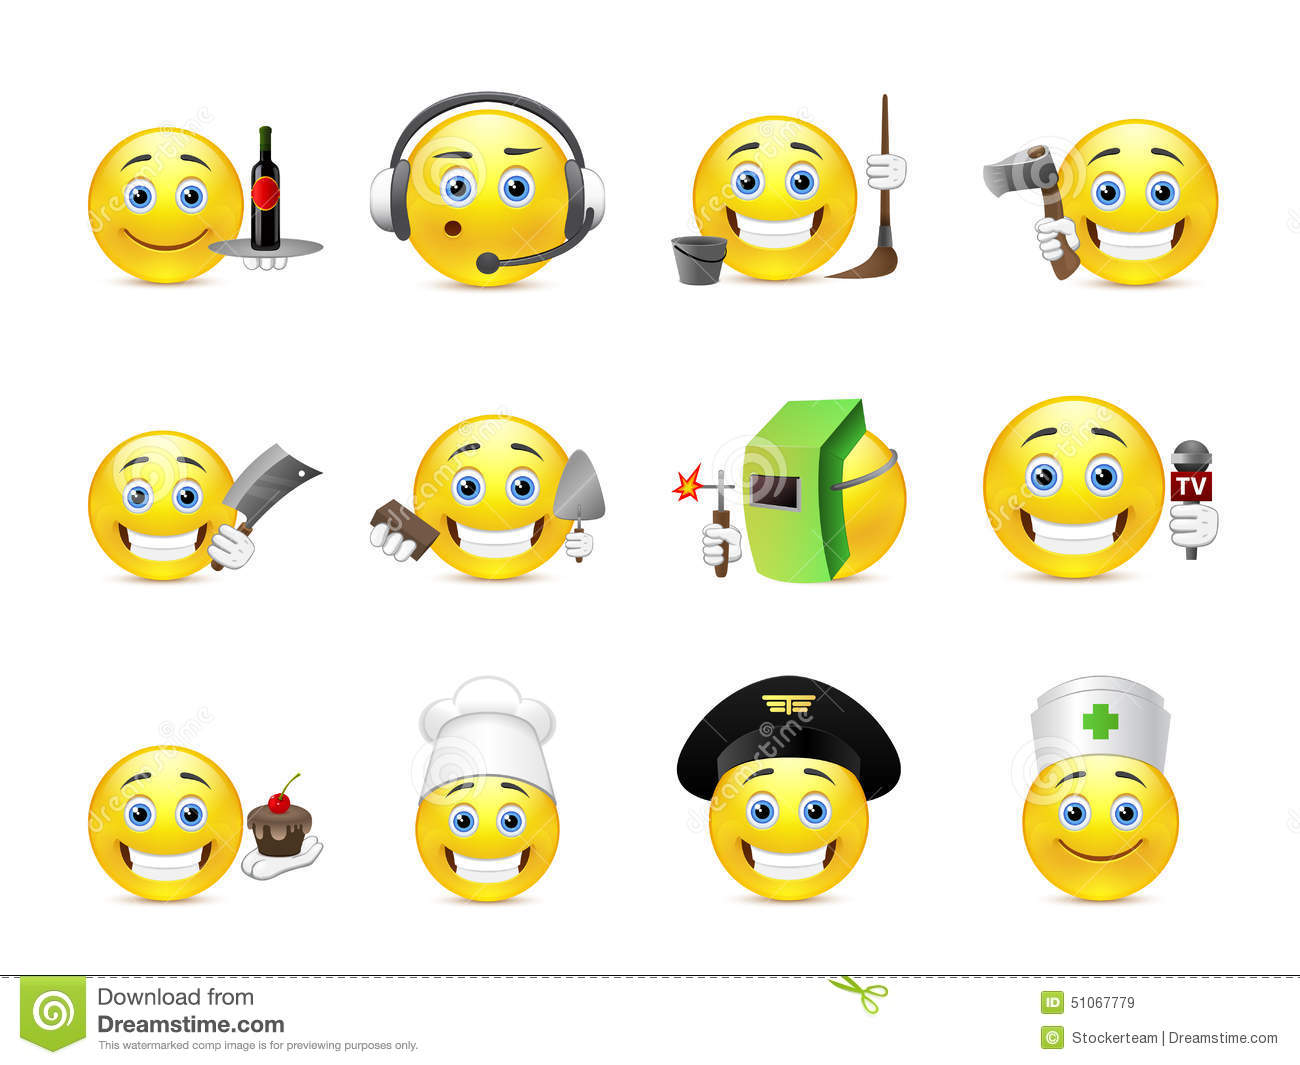 Cool Smiley Face Thumbs Up Smilies Different Prof...